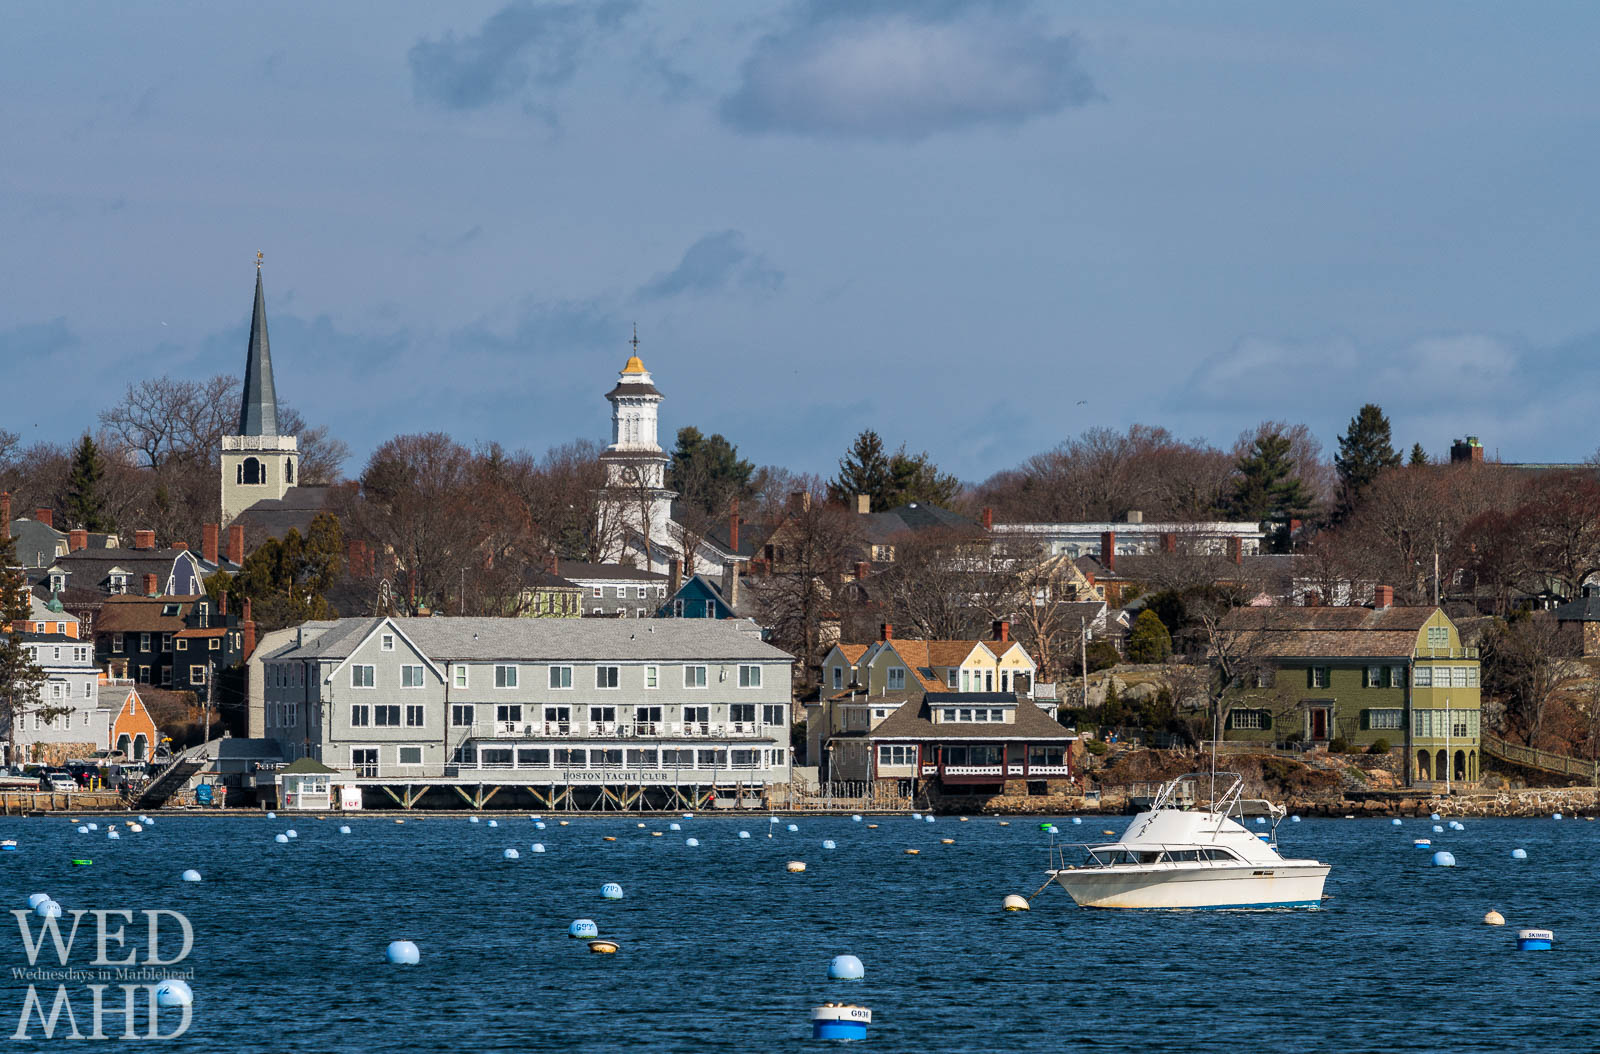 The first one in to an empty Marblehead Harbor is this boat moored in front of the BYC